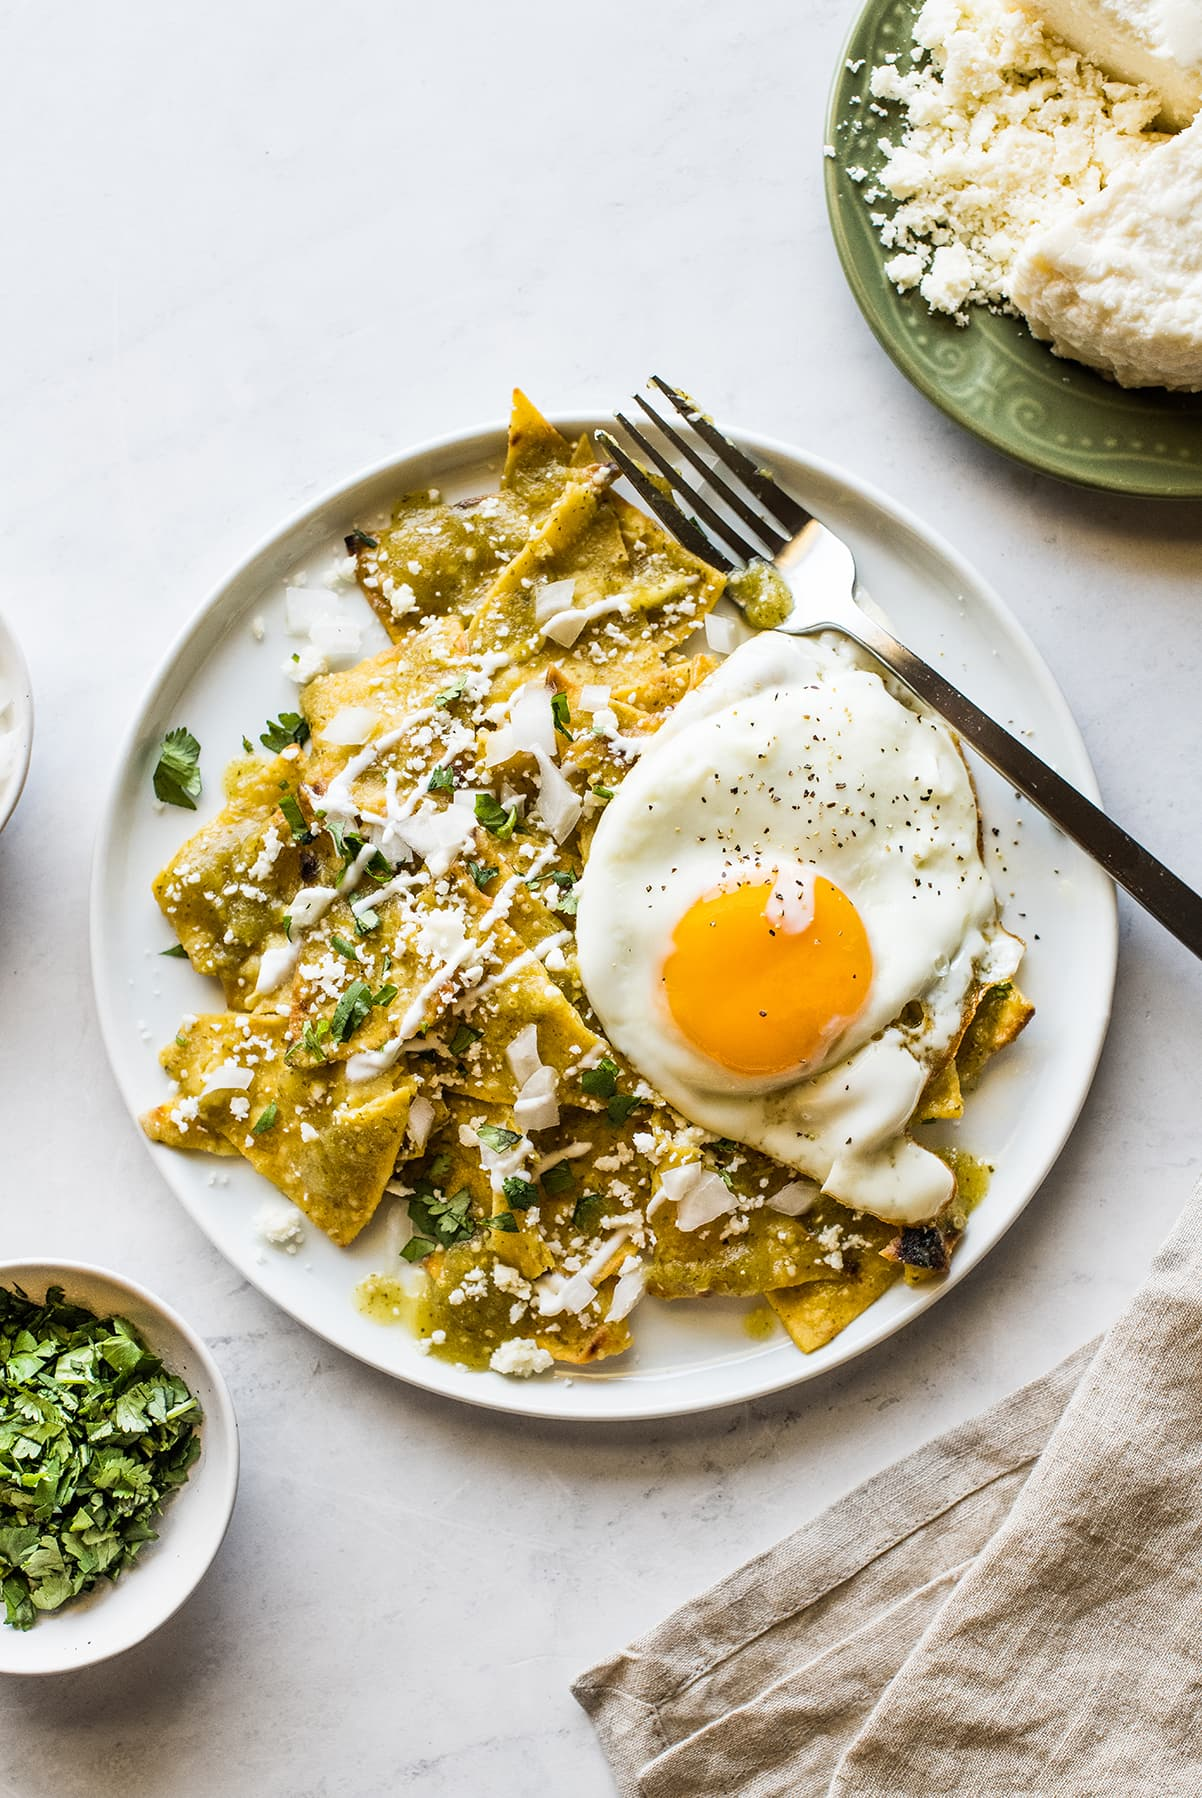 Chilaquiles Verdes topped with a sunny side up egg.